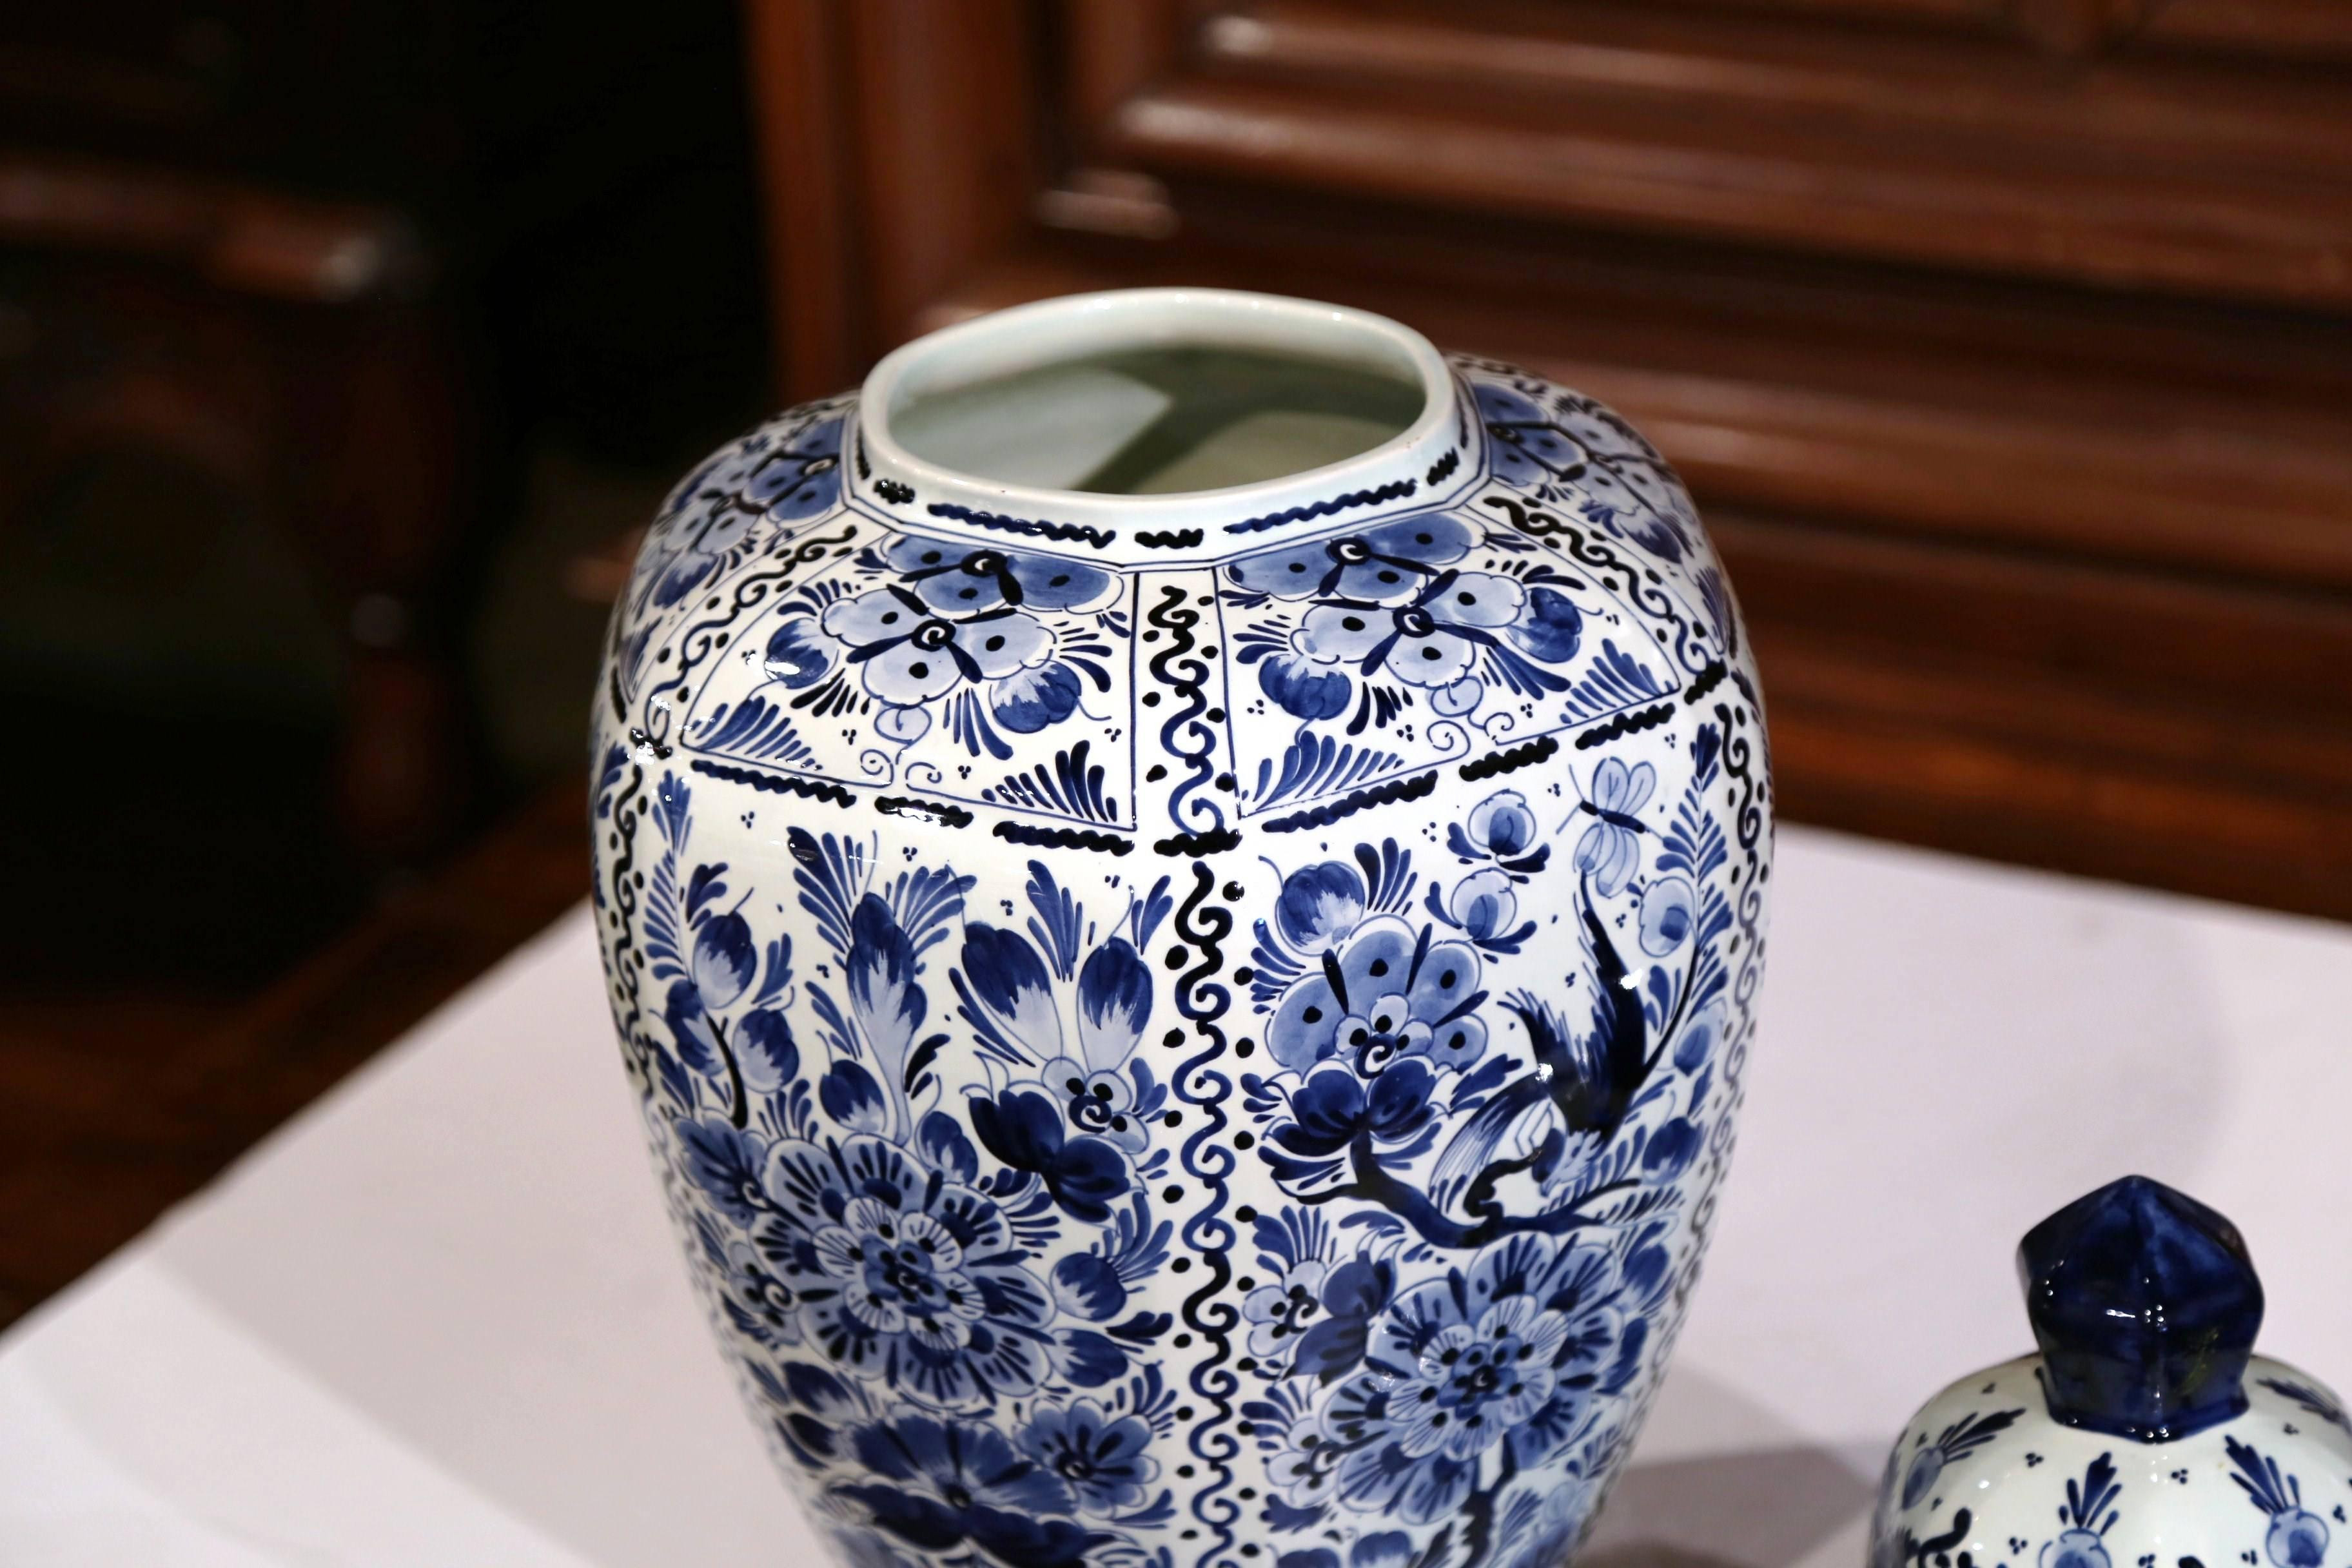 delft holland vase of large mid 20th century dutch blue and white faience delft ginger jar inside large mid 20th century dutch blue and white faience delft ginger jar with top at 1stdibs